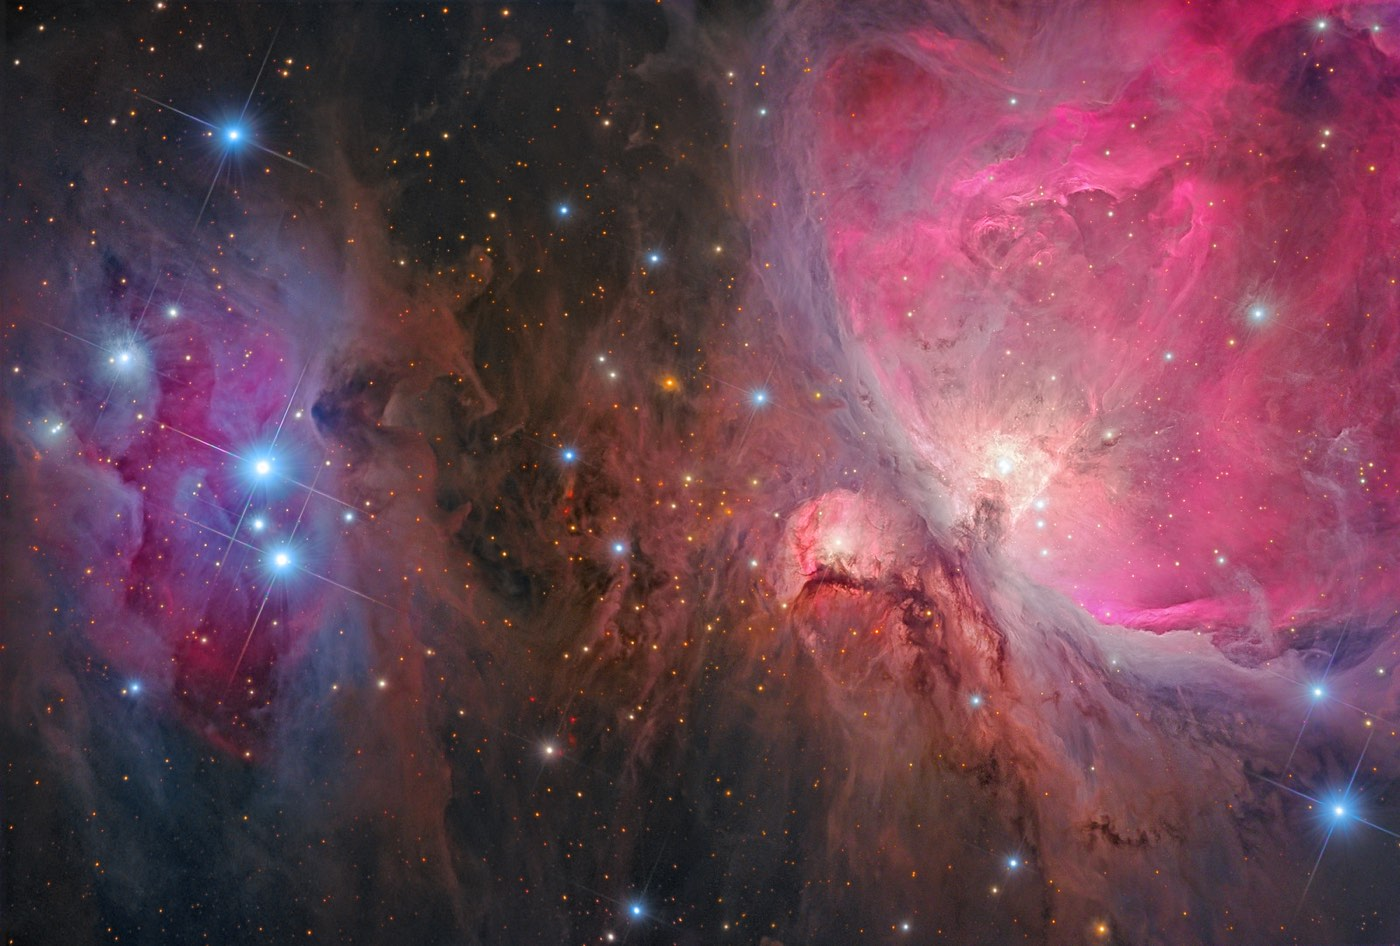 The Orion Nebula, our friendly neighborhood star factory